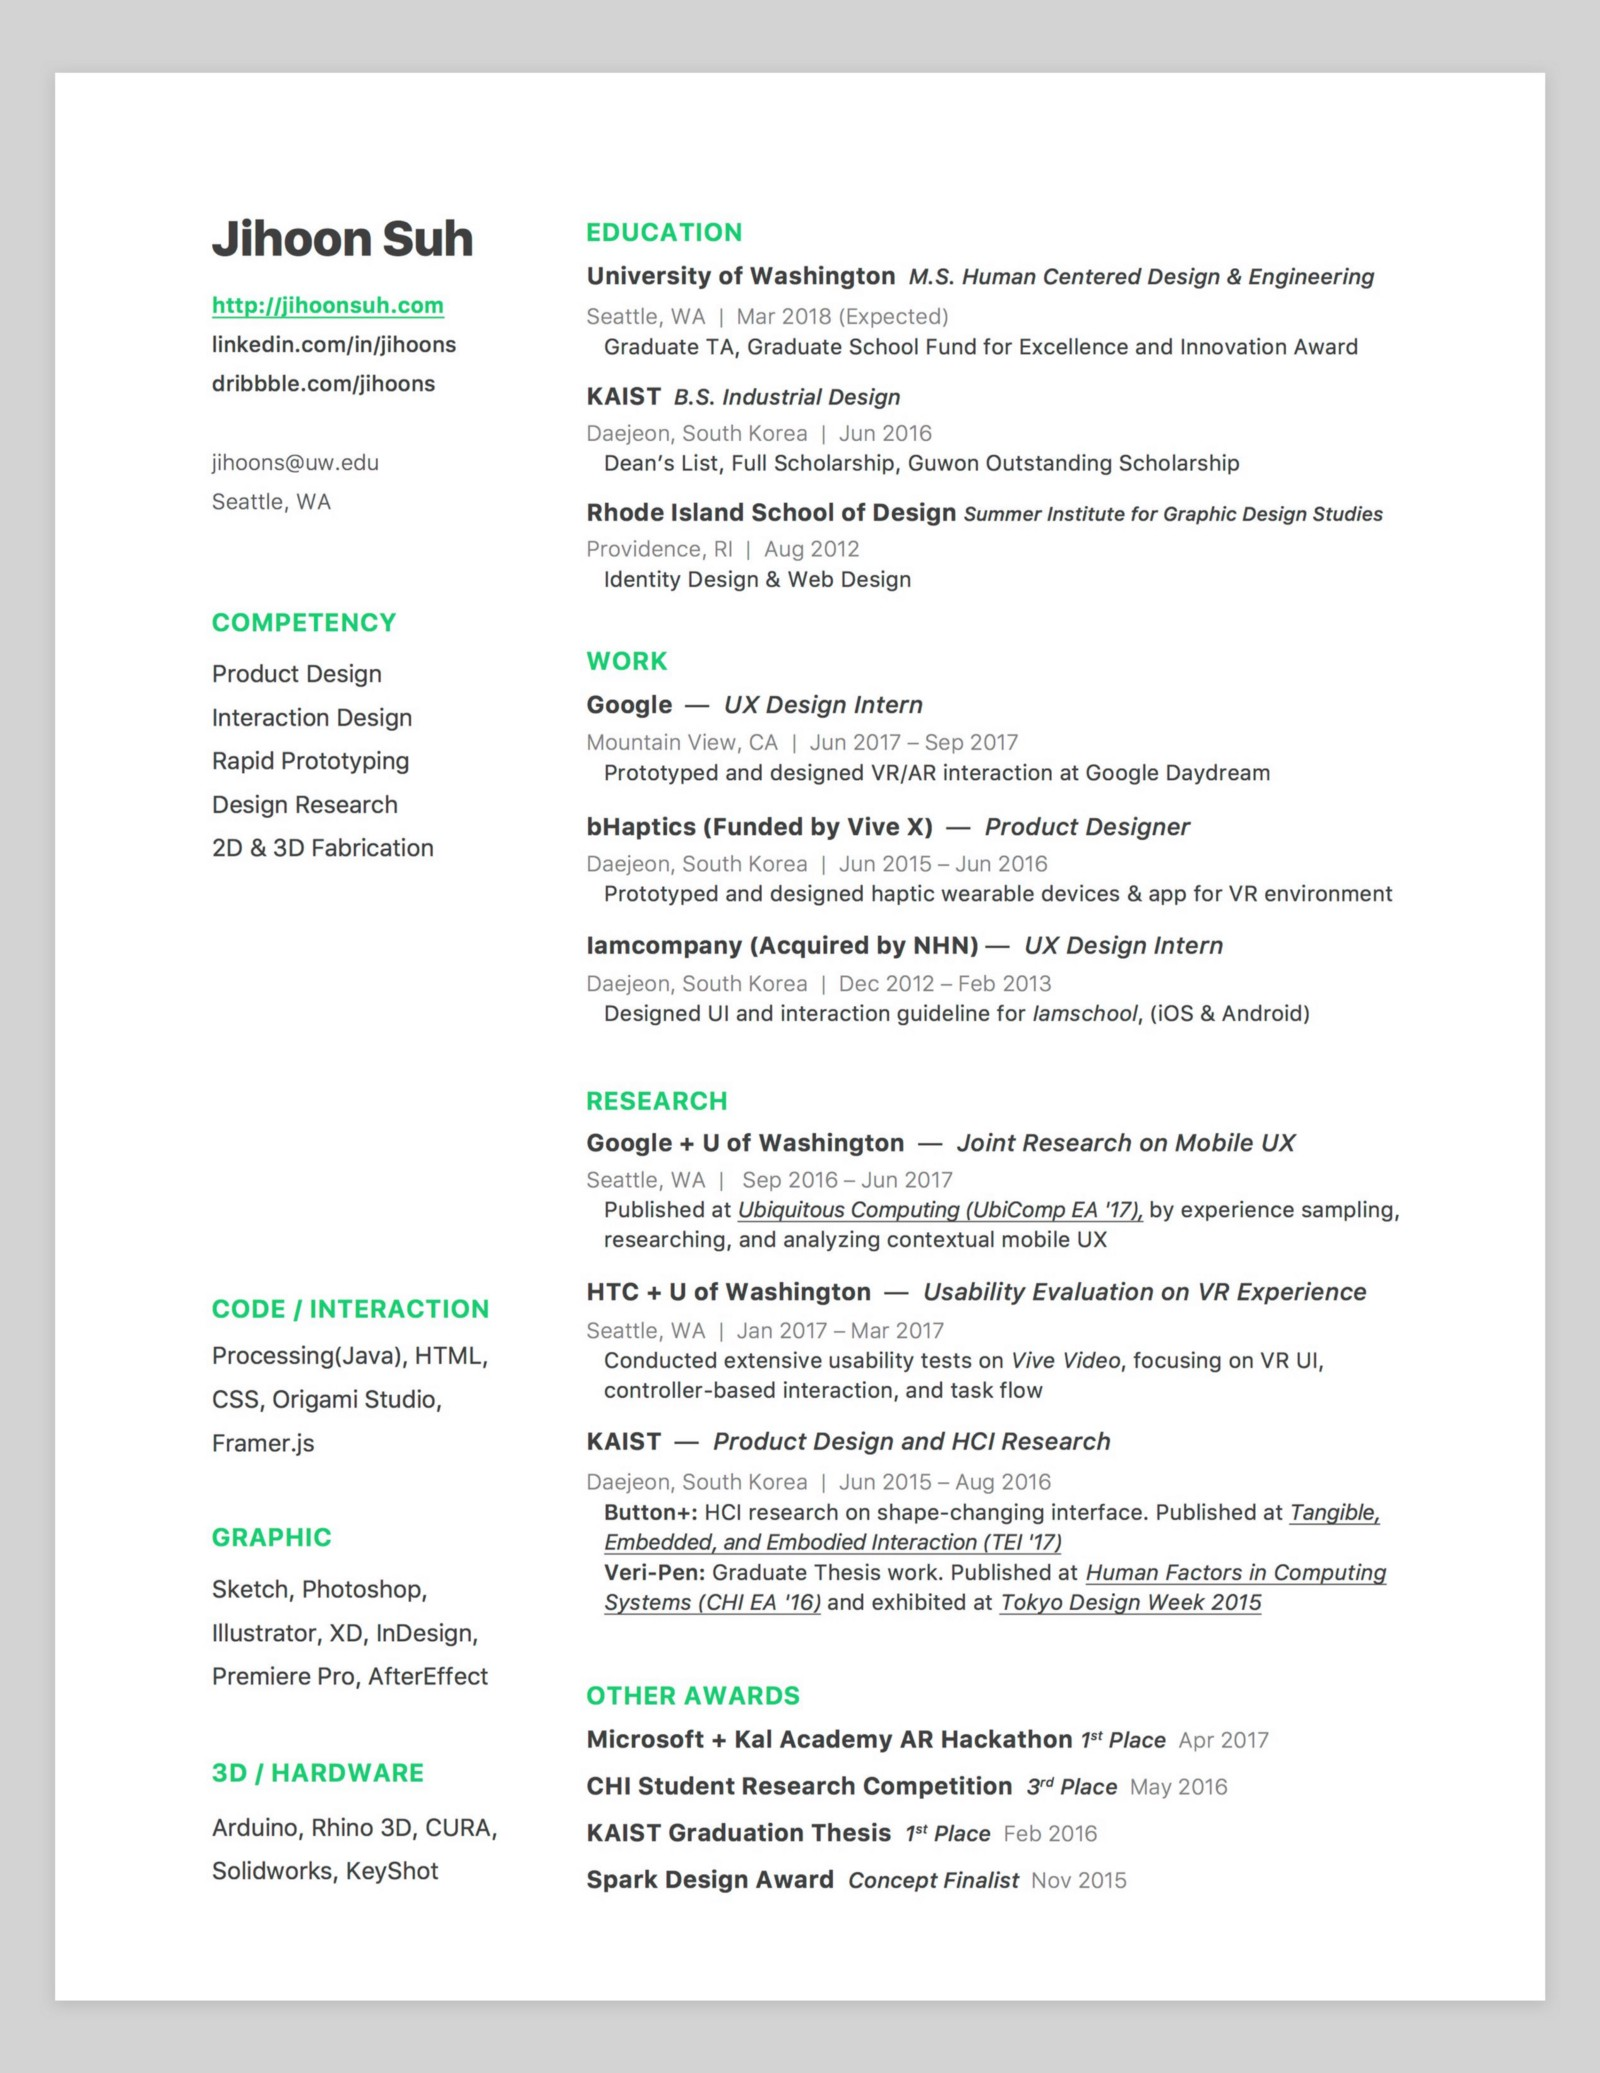 10 Amazing Designer Resumes that Passed Google\'s Bar